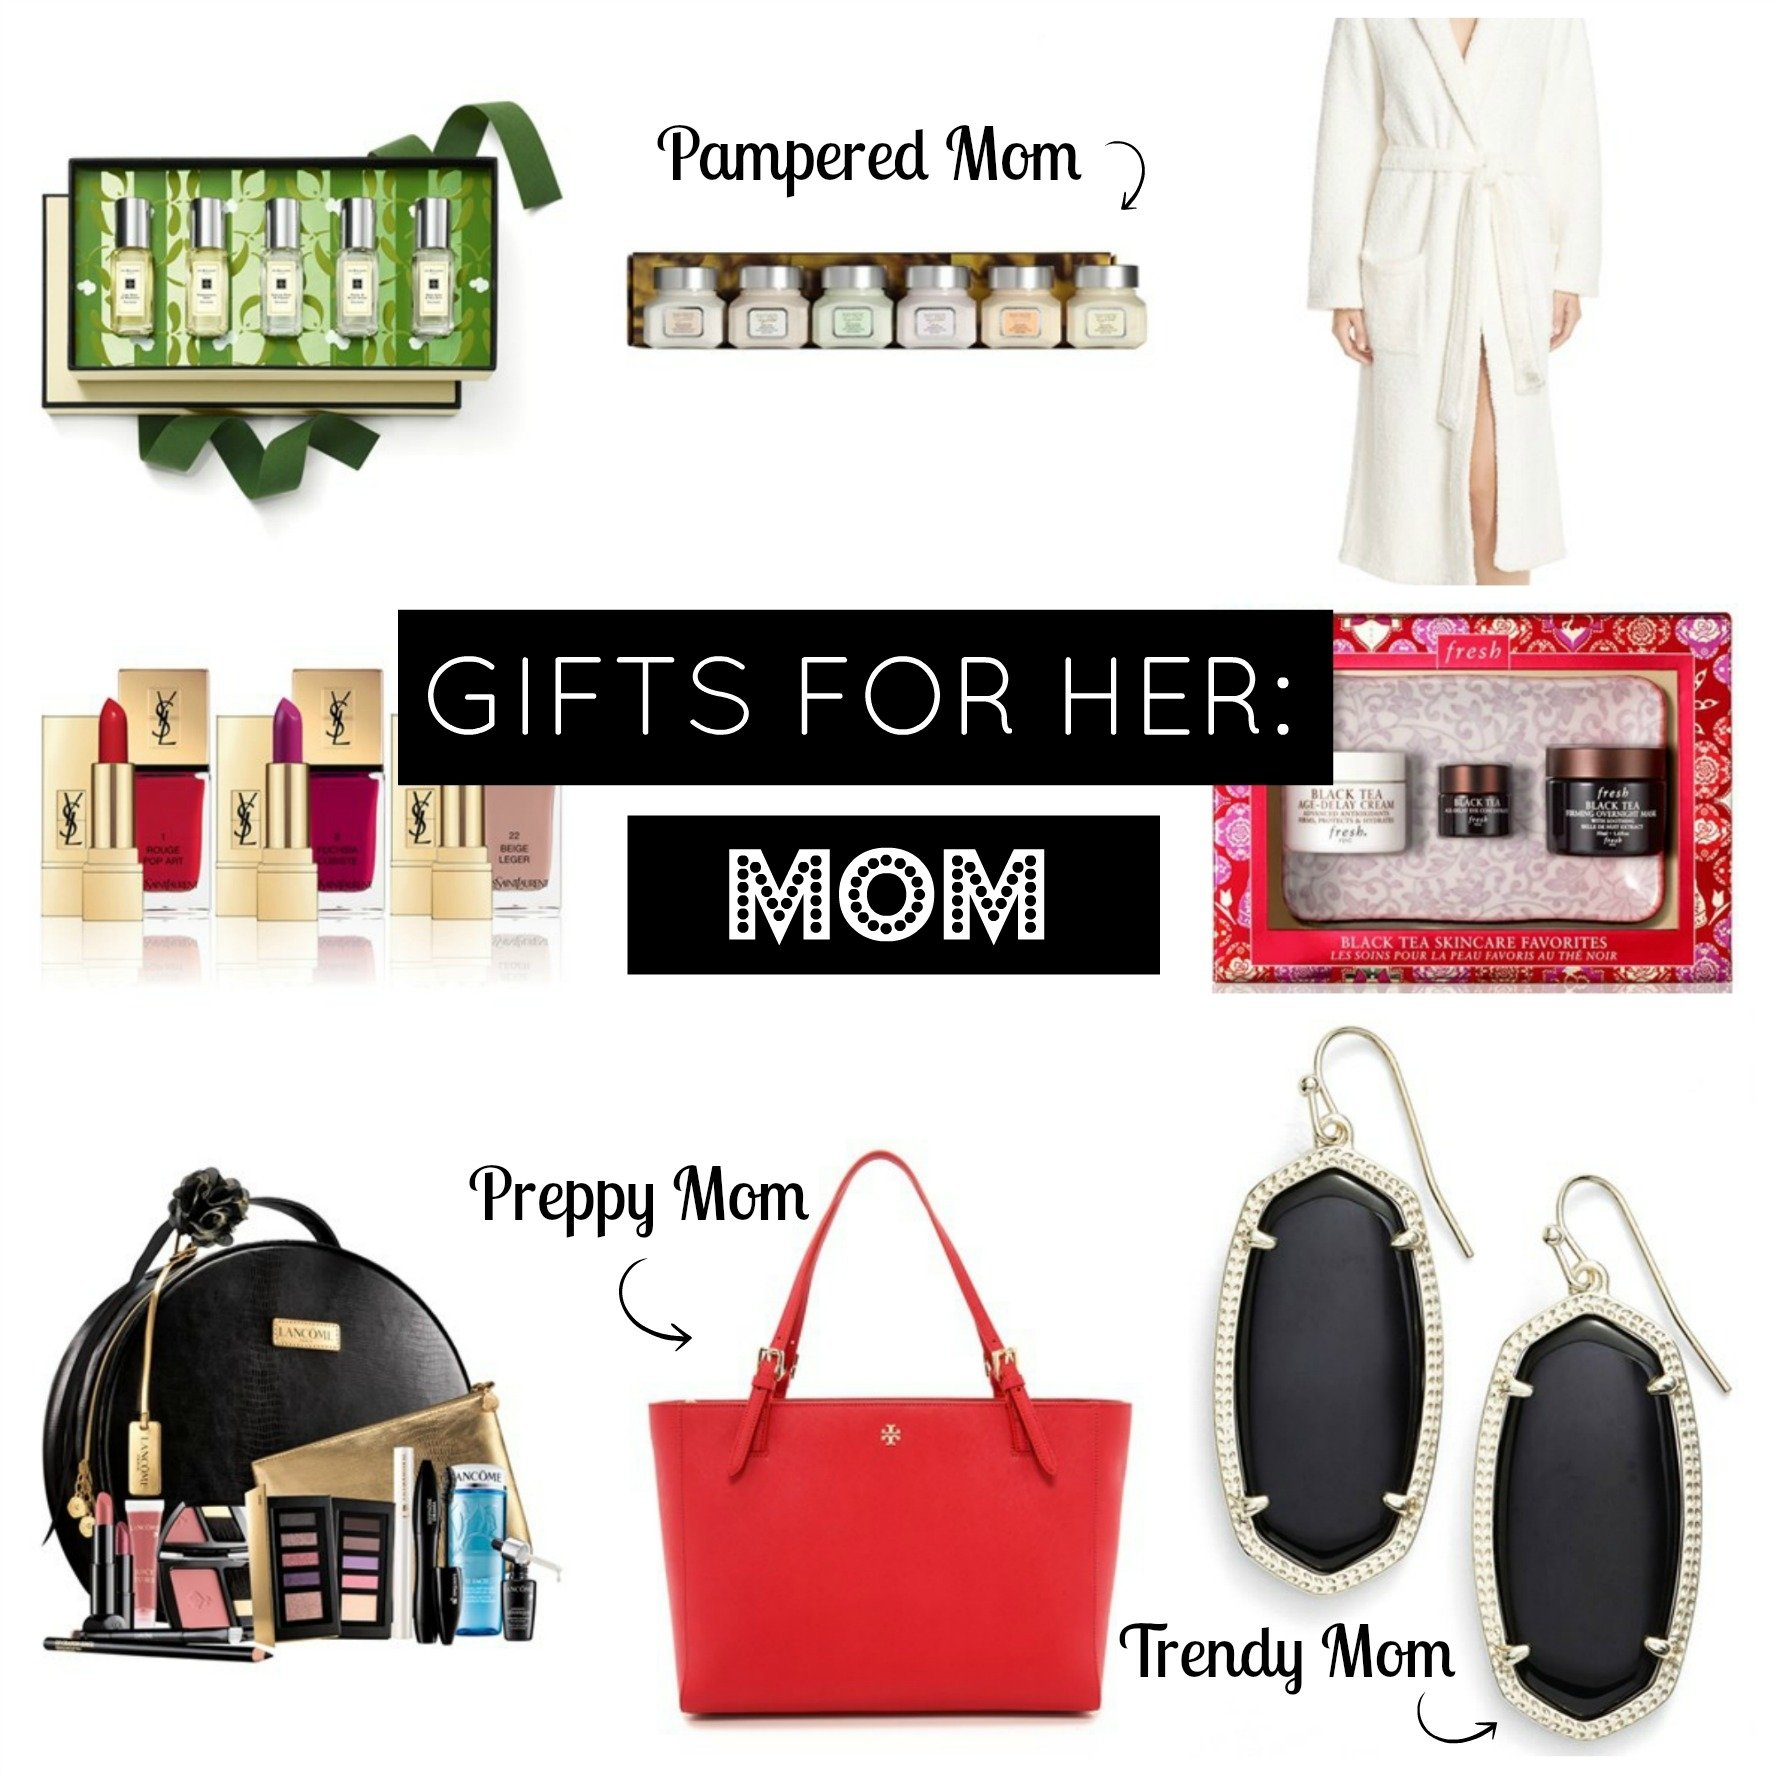 10 Elegant Good Christmas Gift Ideas For Mom Download Good Gifts For Mom For Christmas Moviepulse